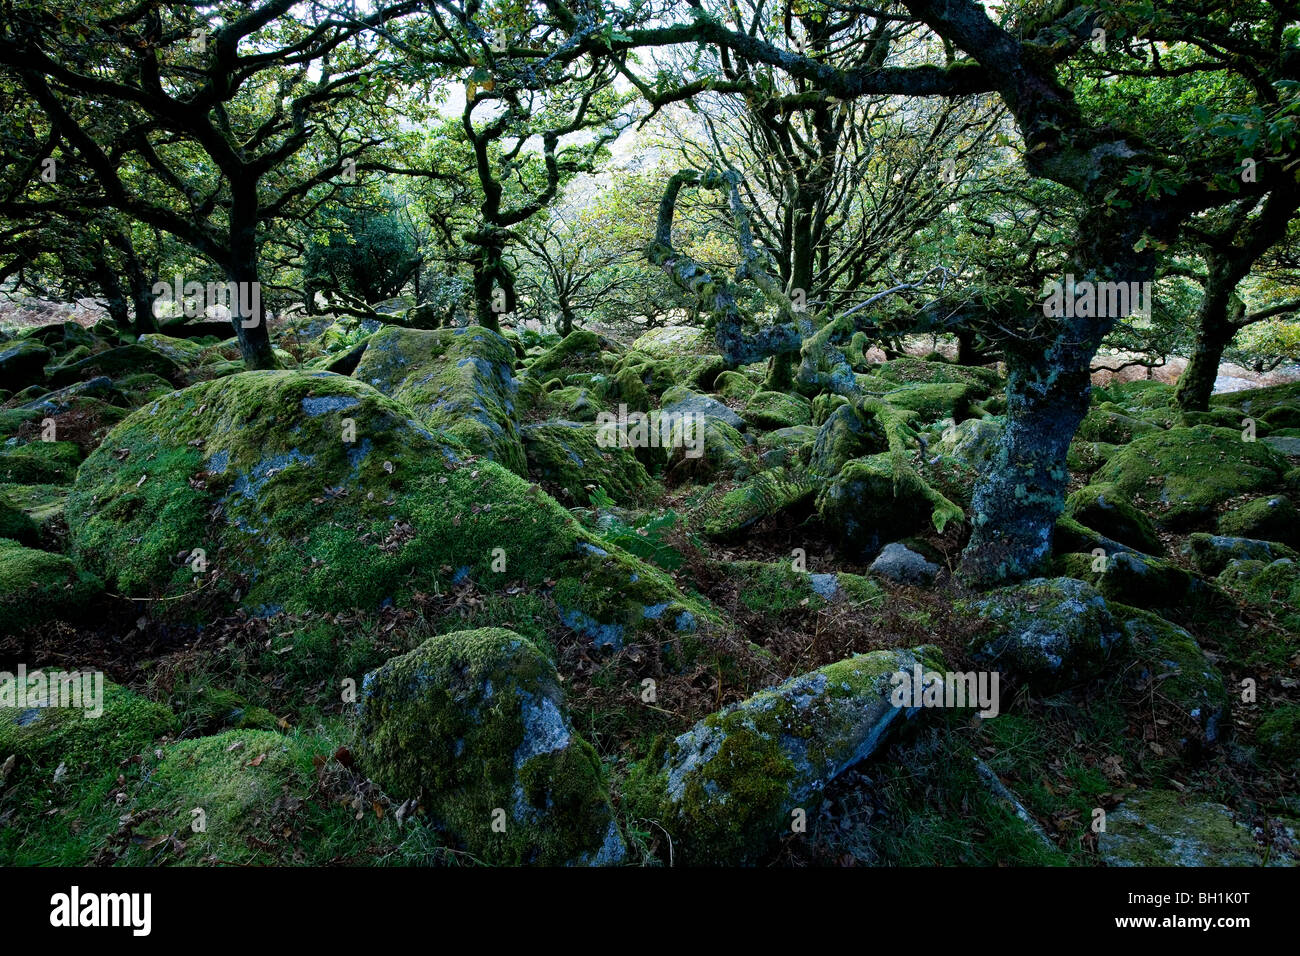 Europe, England, Devon, oak forest Wistman`s Wood in the Dartmoor near Two Bridges - Stock Image